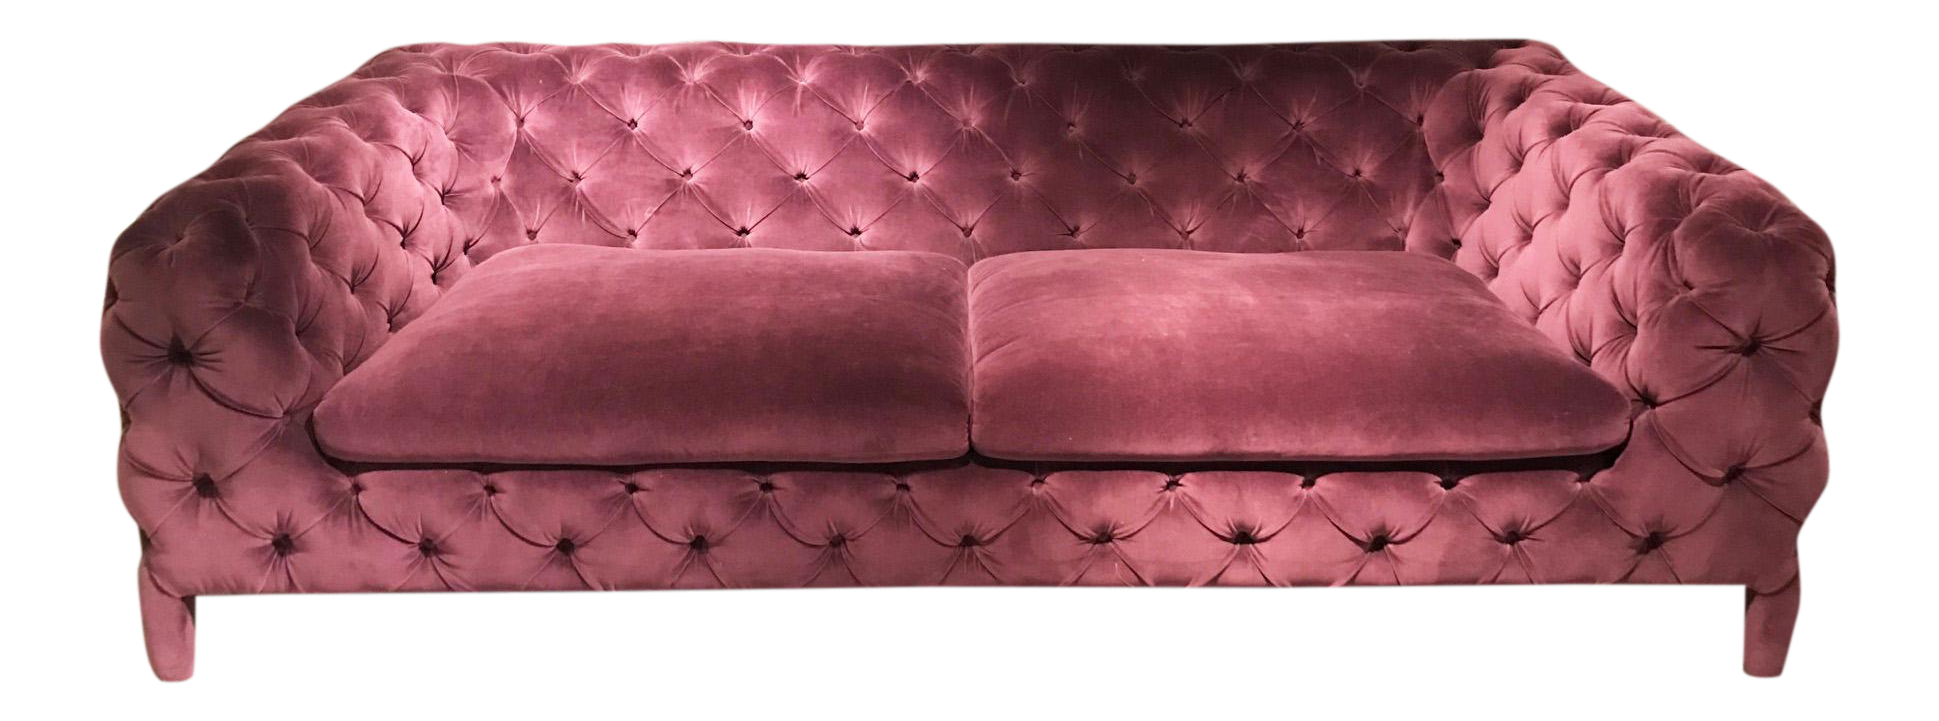 Windsor Button Tufted Purple Velvet Sofa